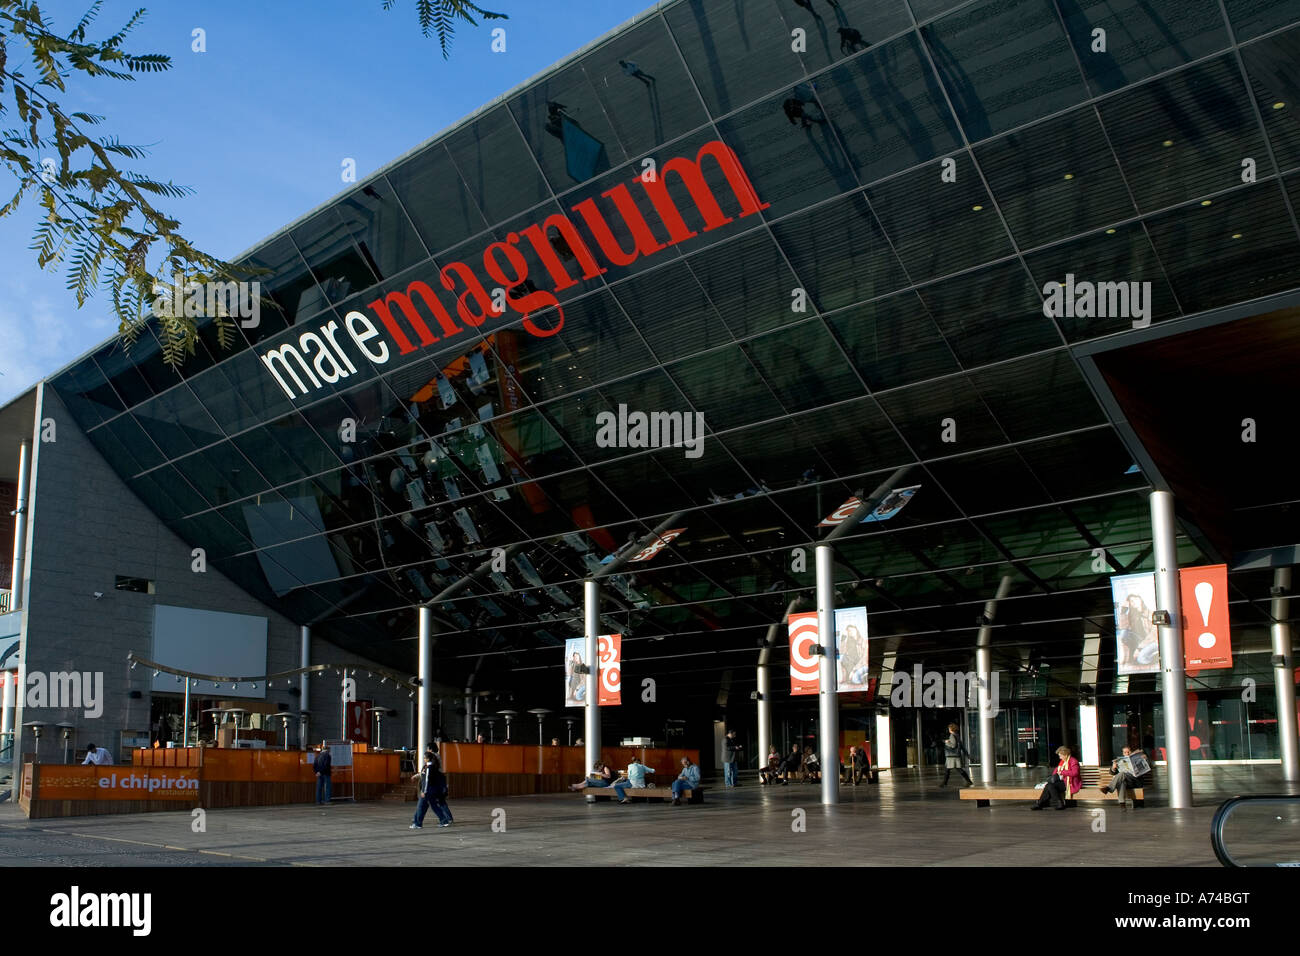 Mare Magnum leisure-shopping complex in Port Vell, Barcelona, Spain - Stock Image